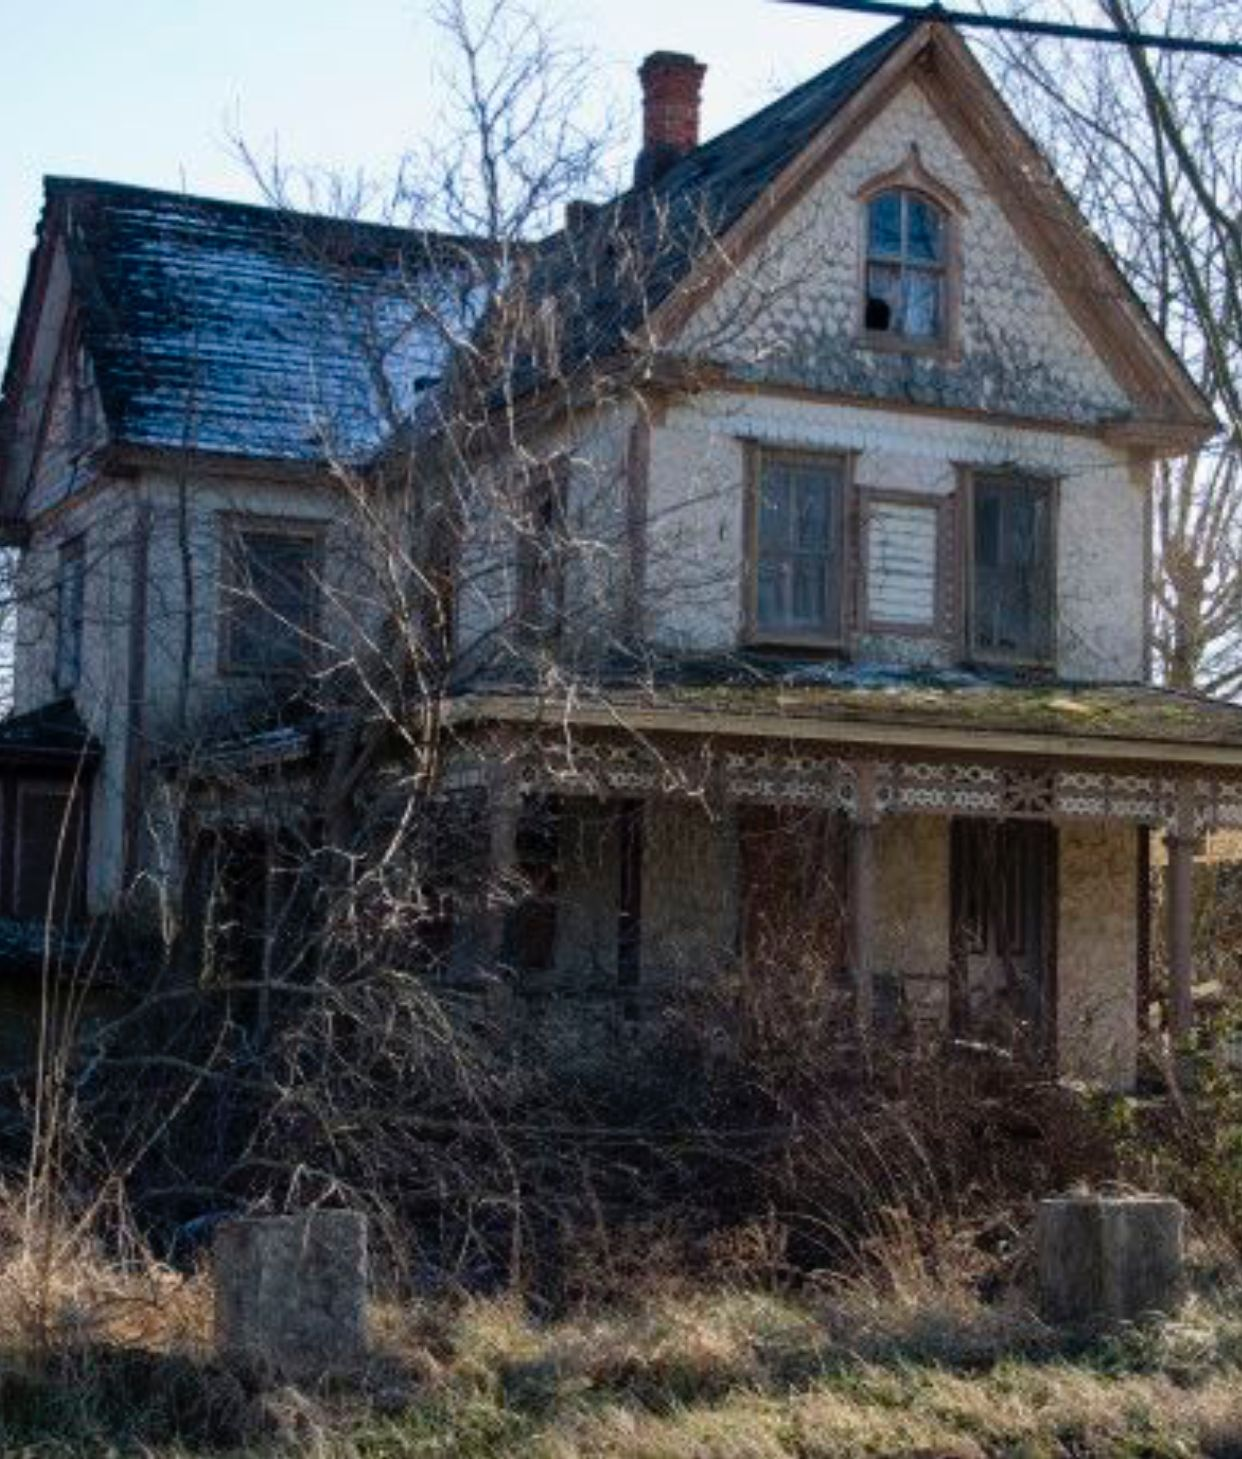 Would Love To See This Classic Farm House Restored To Its